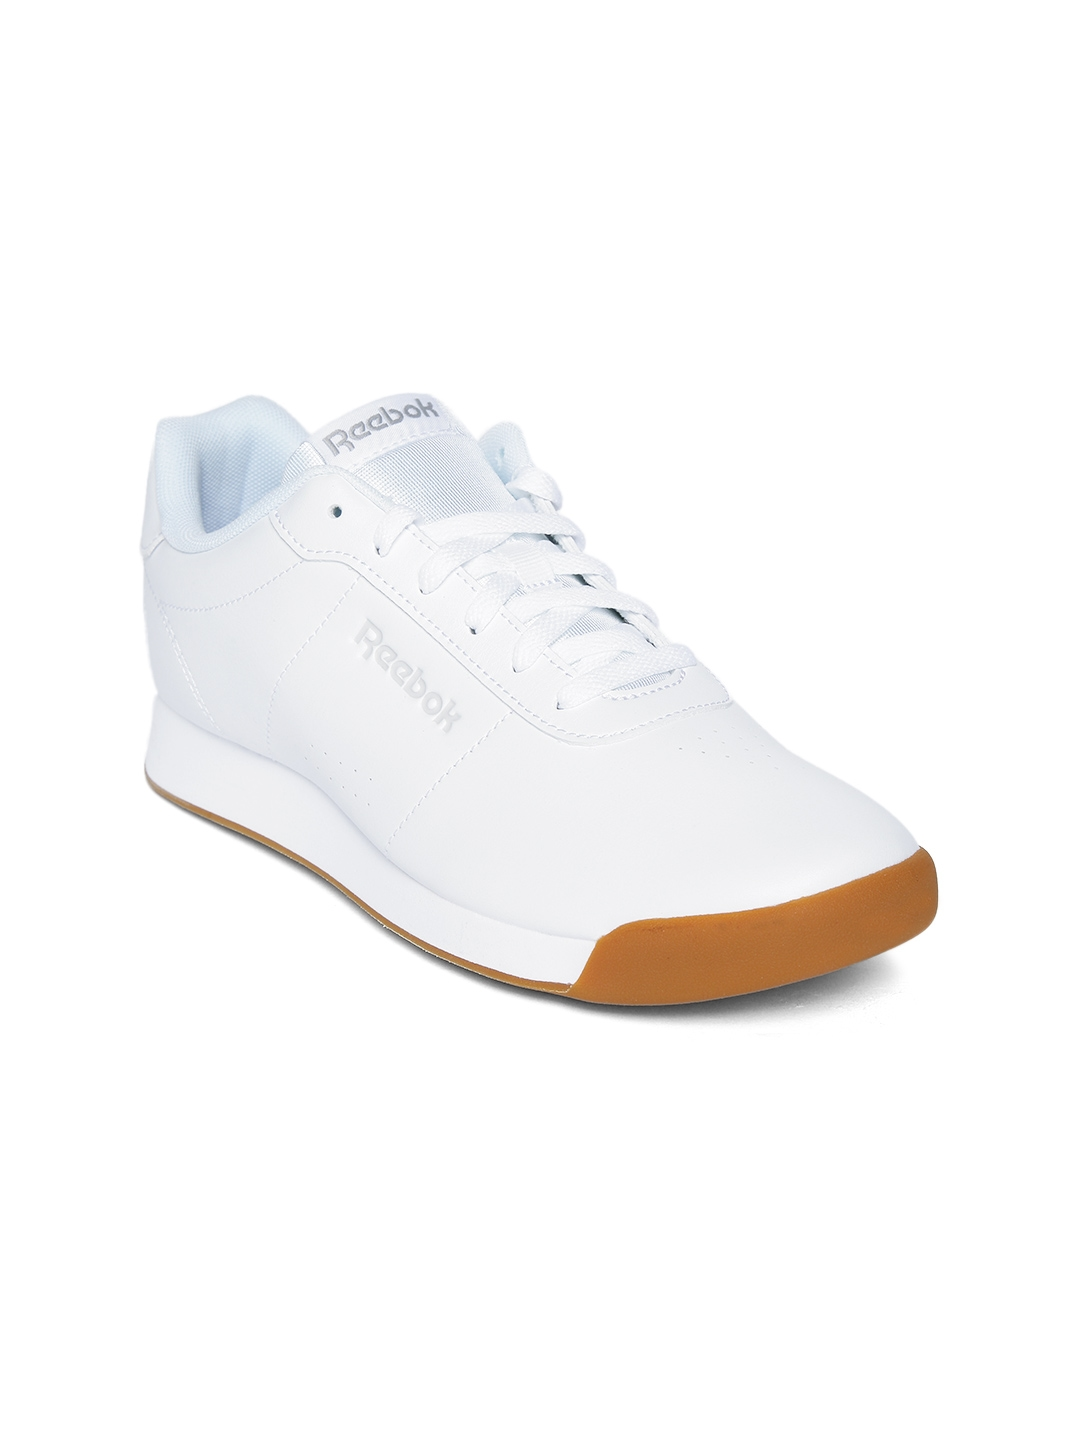 reebok casual shoes myntra - 57% OFF